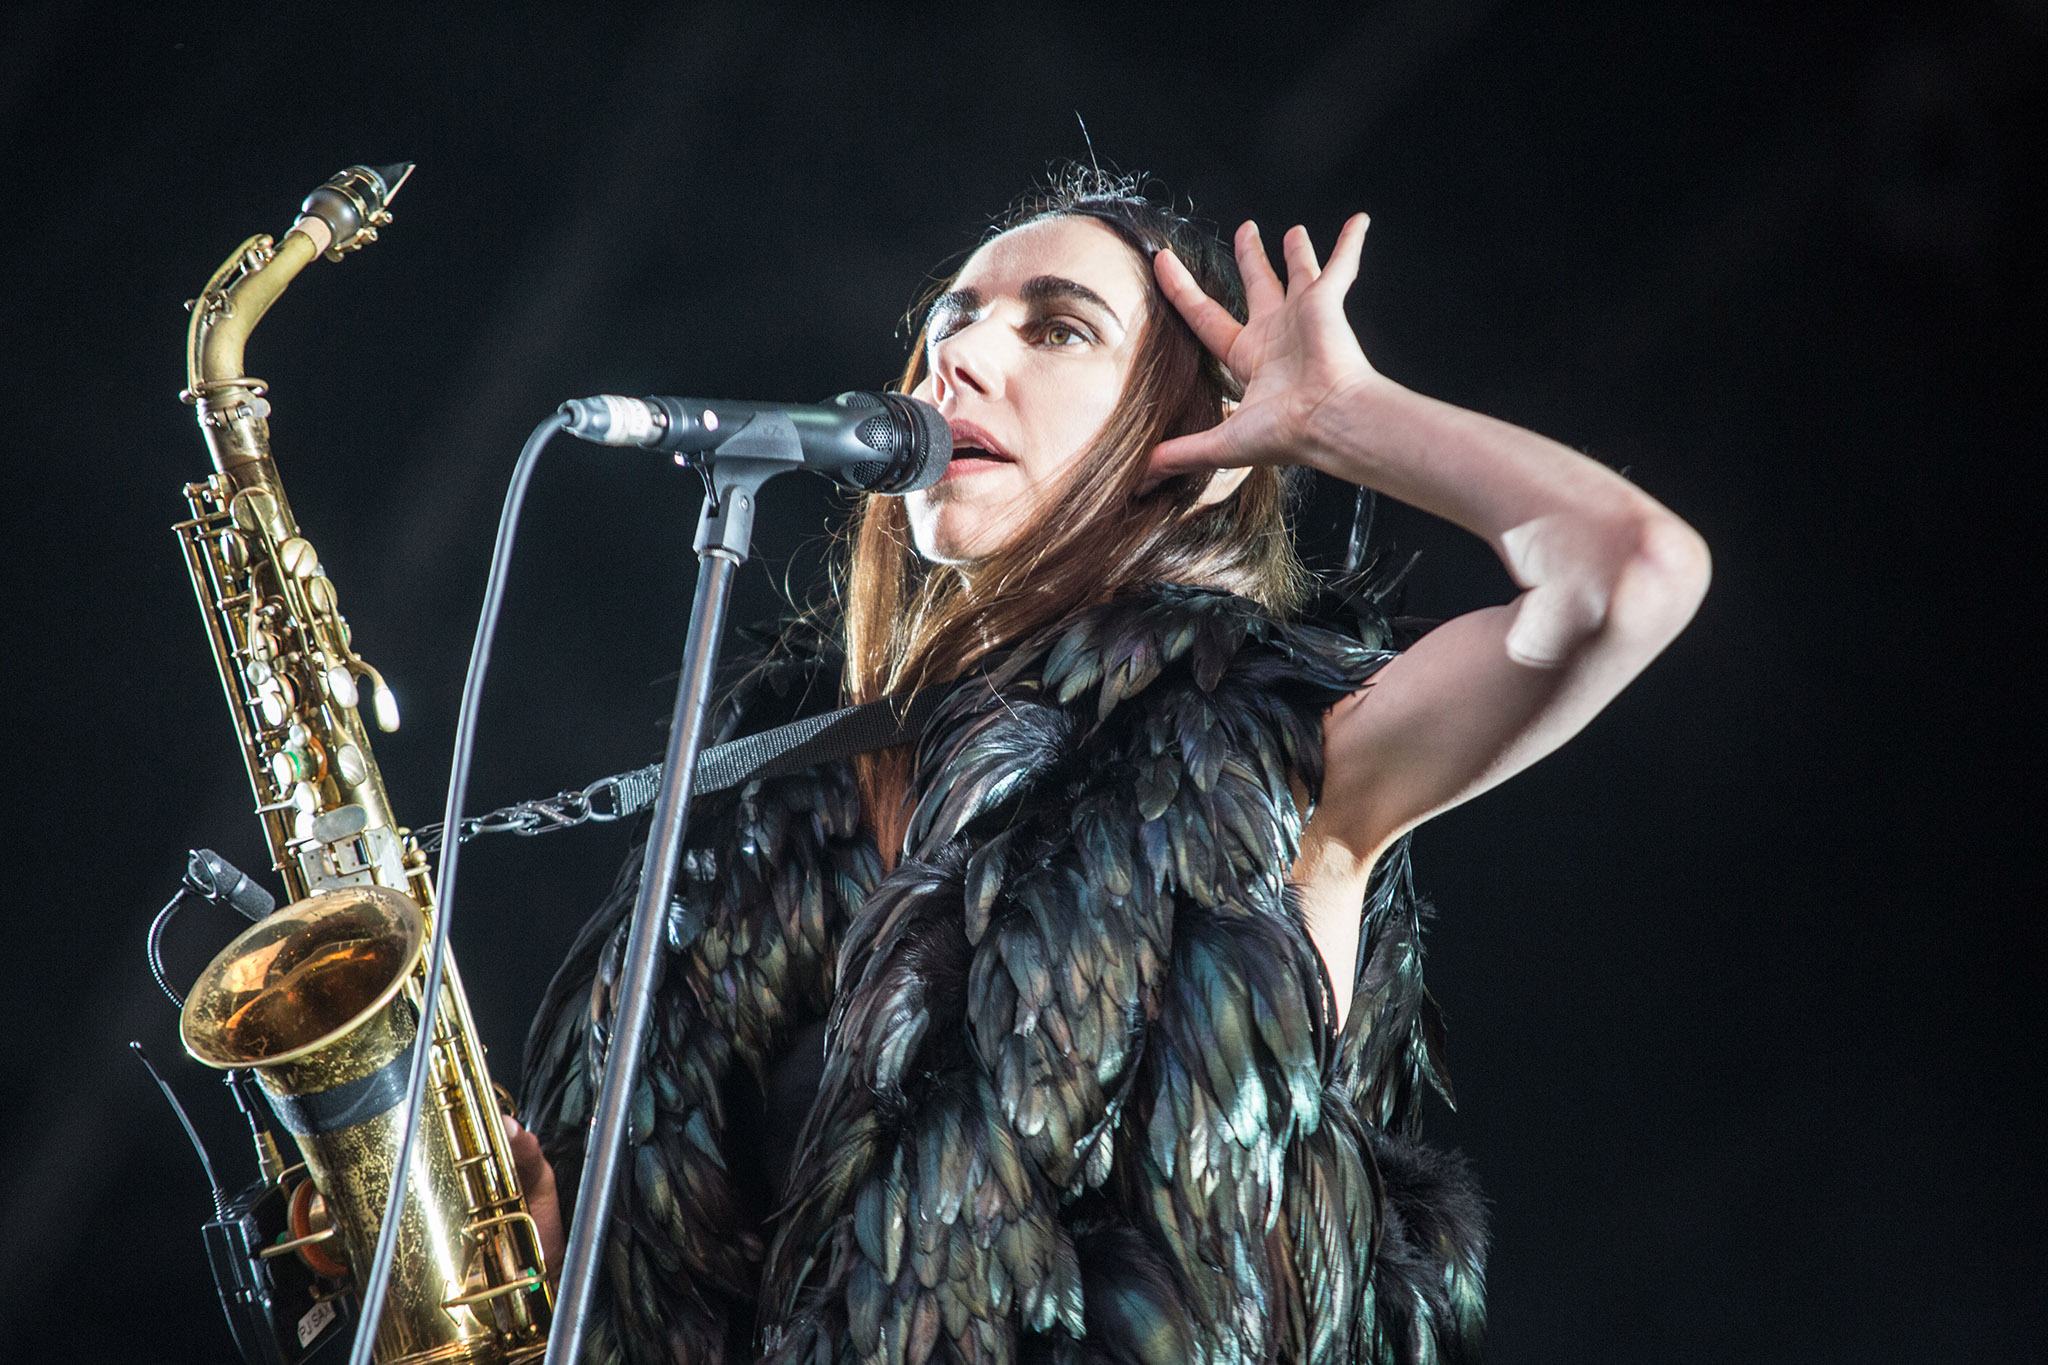 PJ Harvey, The xx, Franz Ferdinand and Flume to headline Rock en Seine 2017